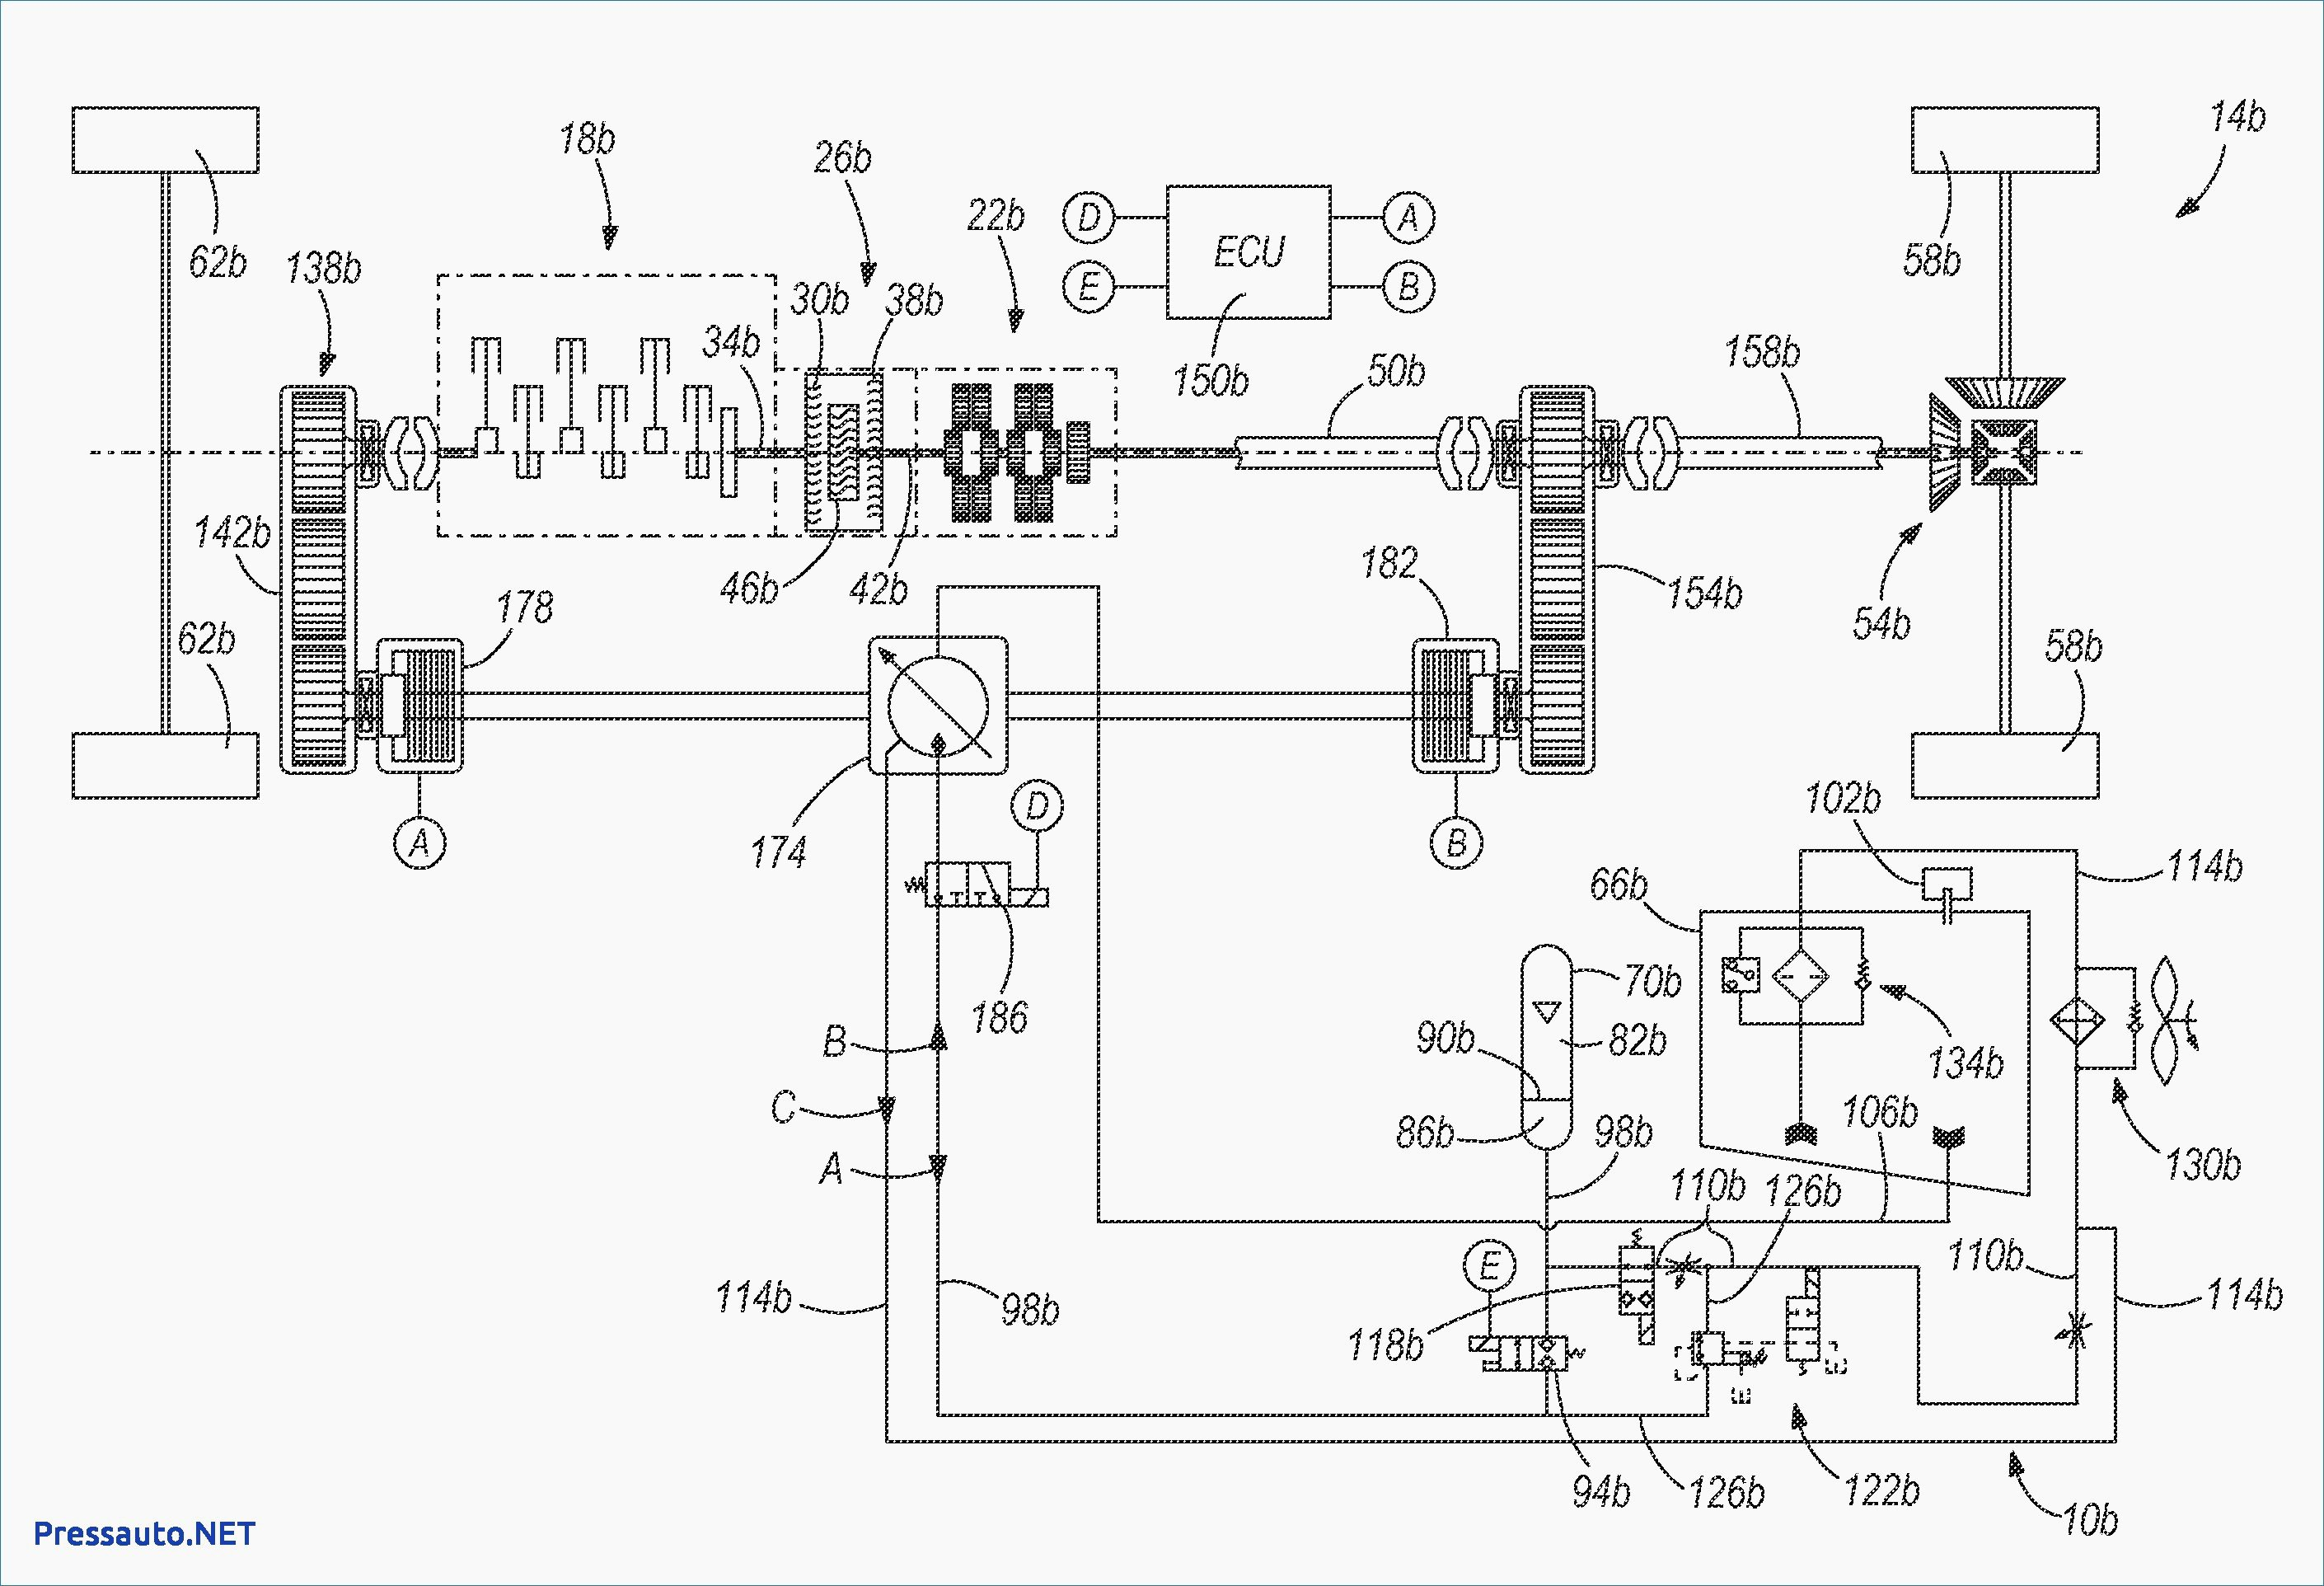 Wiring Diagram For Nitro Bass Boat